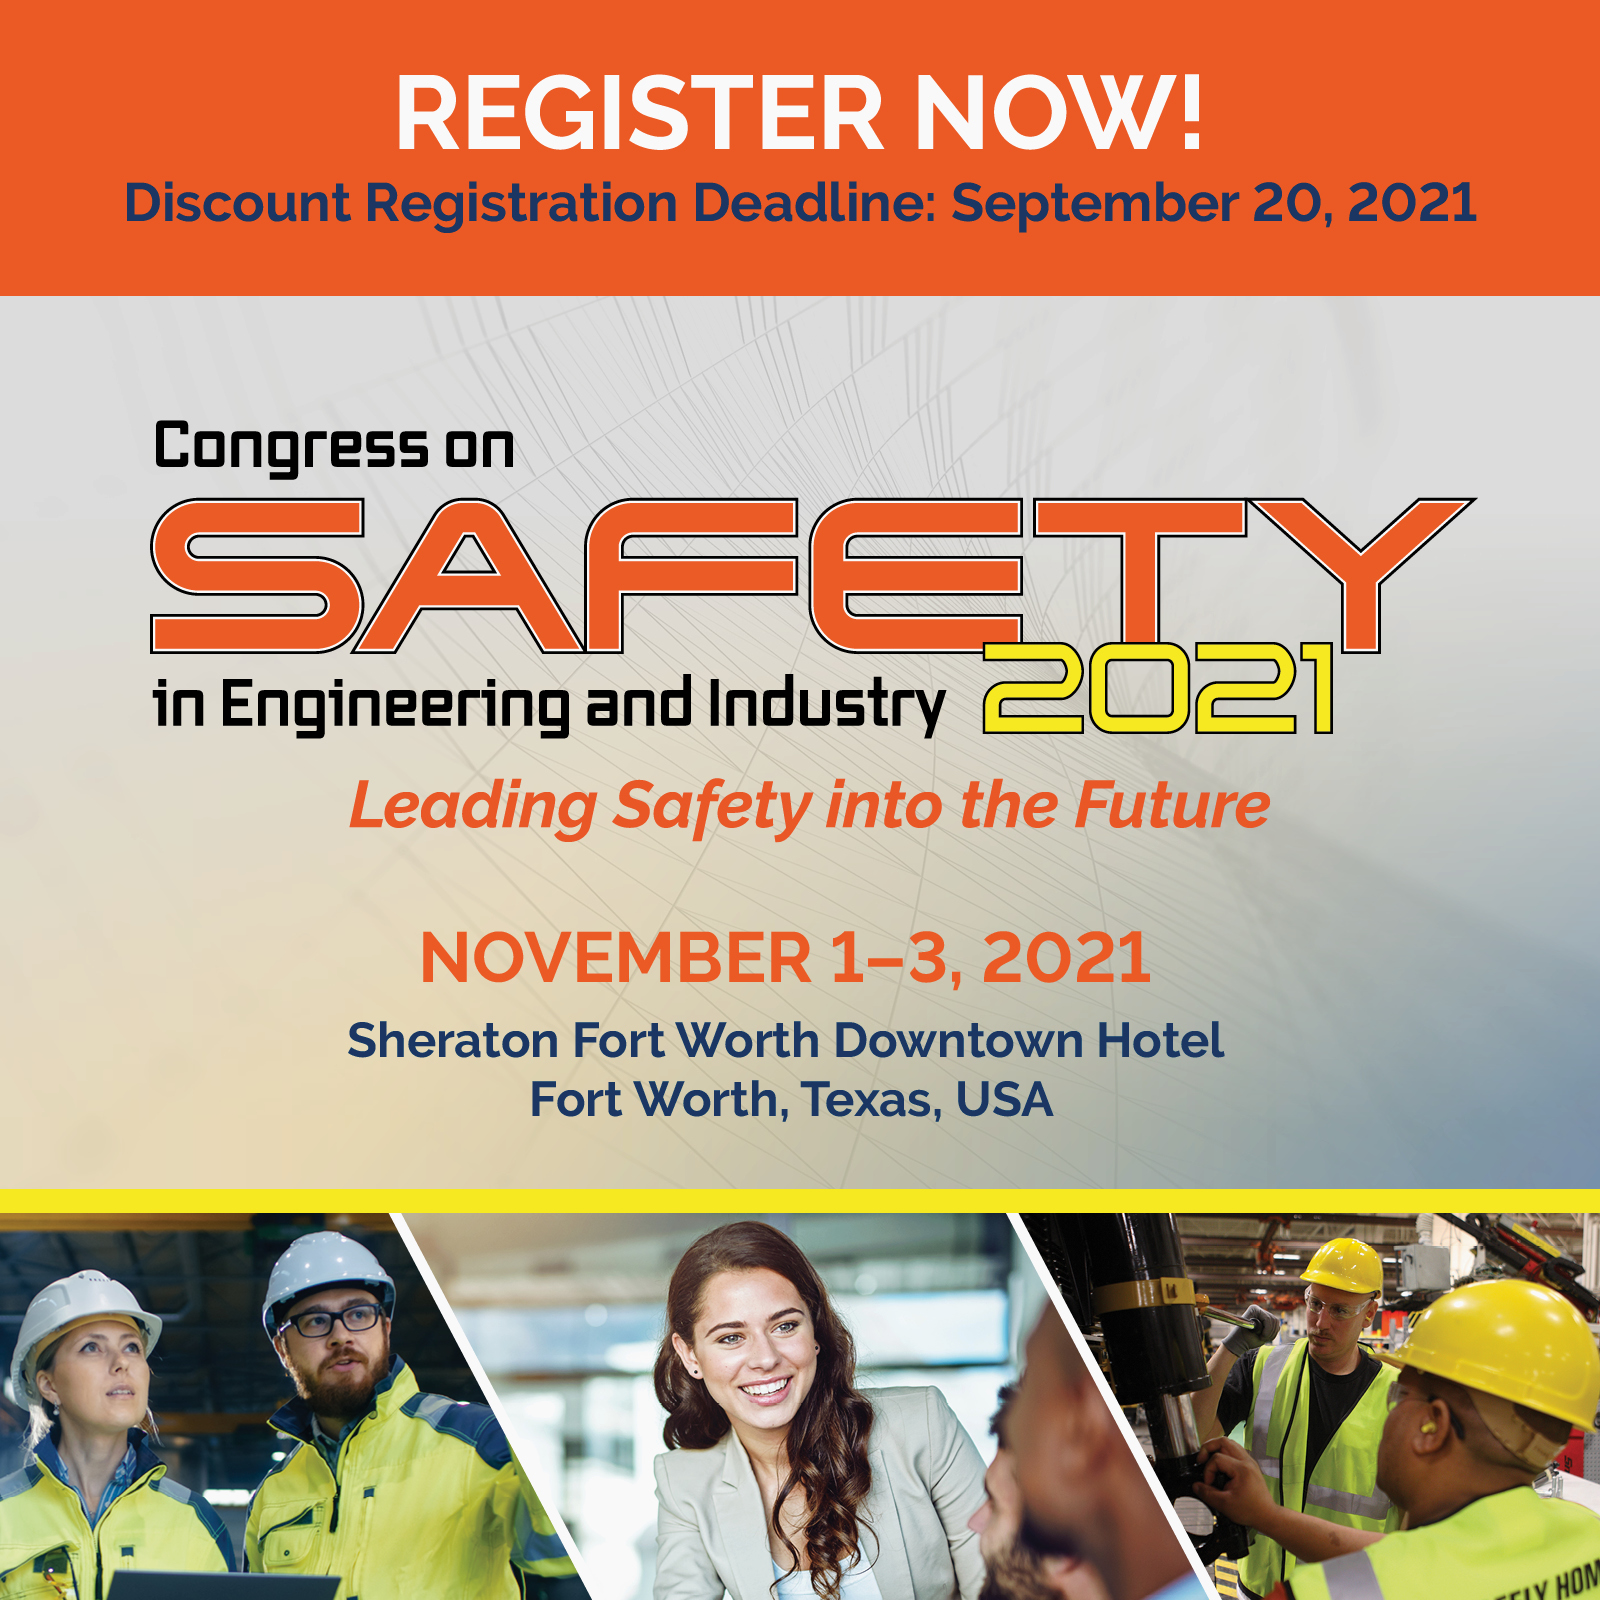 Congress on Safety in Engineering and Industry 2021